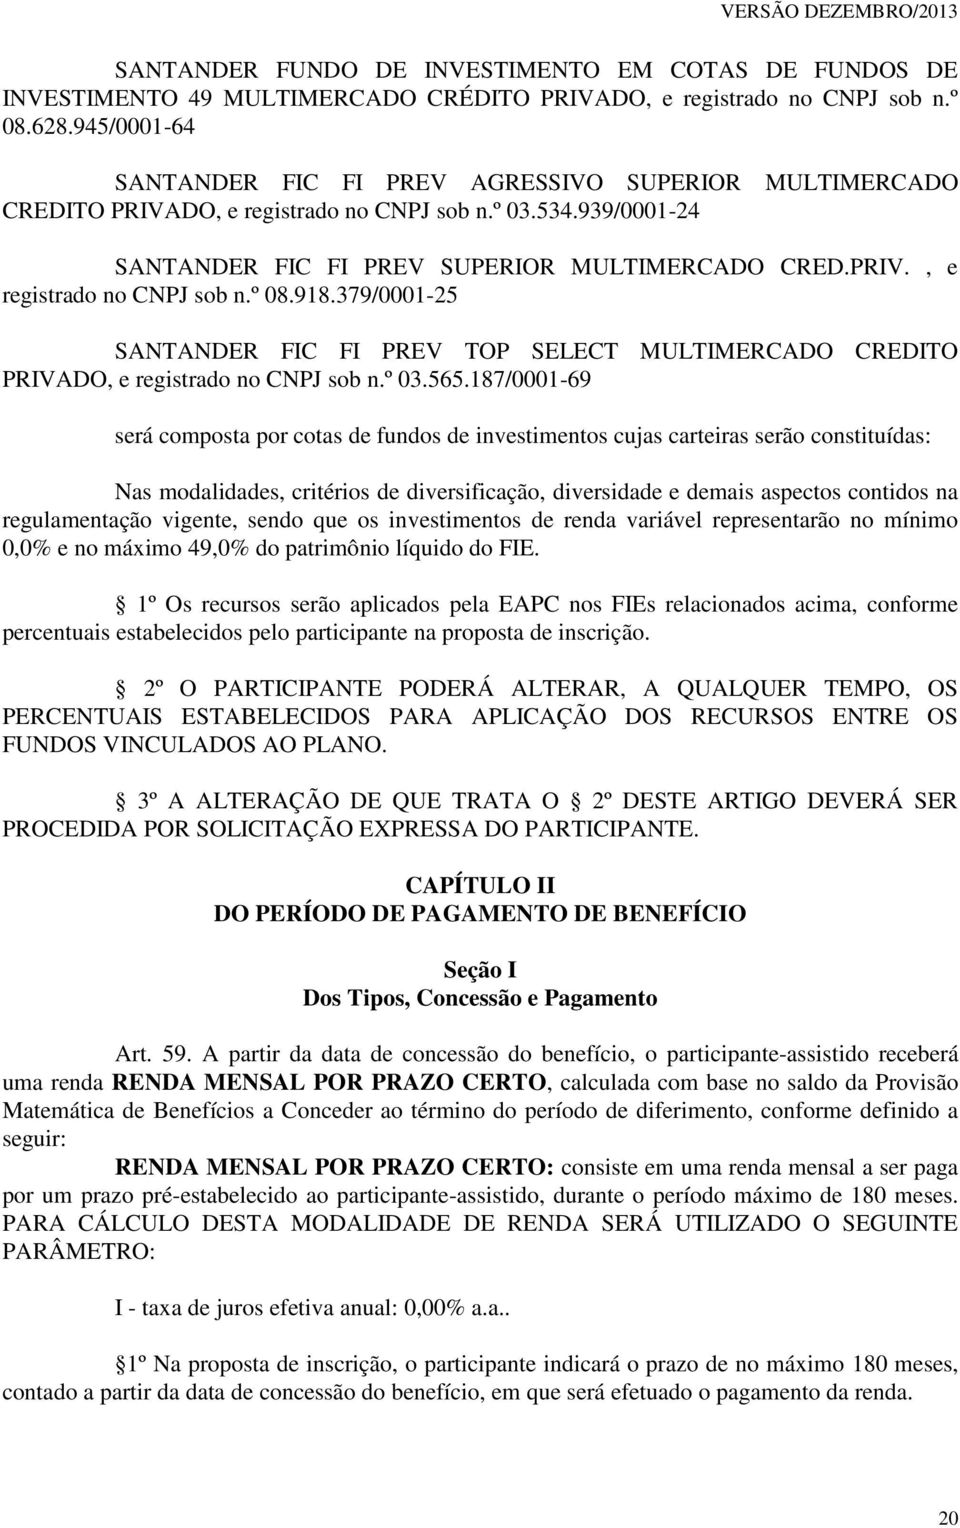 918.379/0001-25 SANTANDER FIC FI PREV TOP SELECT MULTIMERCADO CREDITO PRIVADO, e registrado no CNPJ sob n.º 03.565.